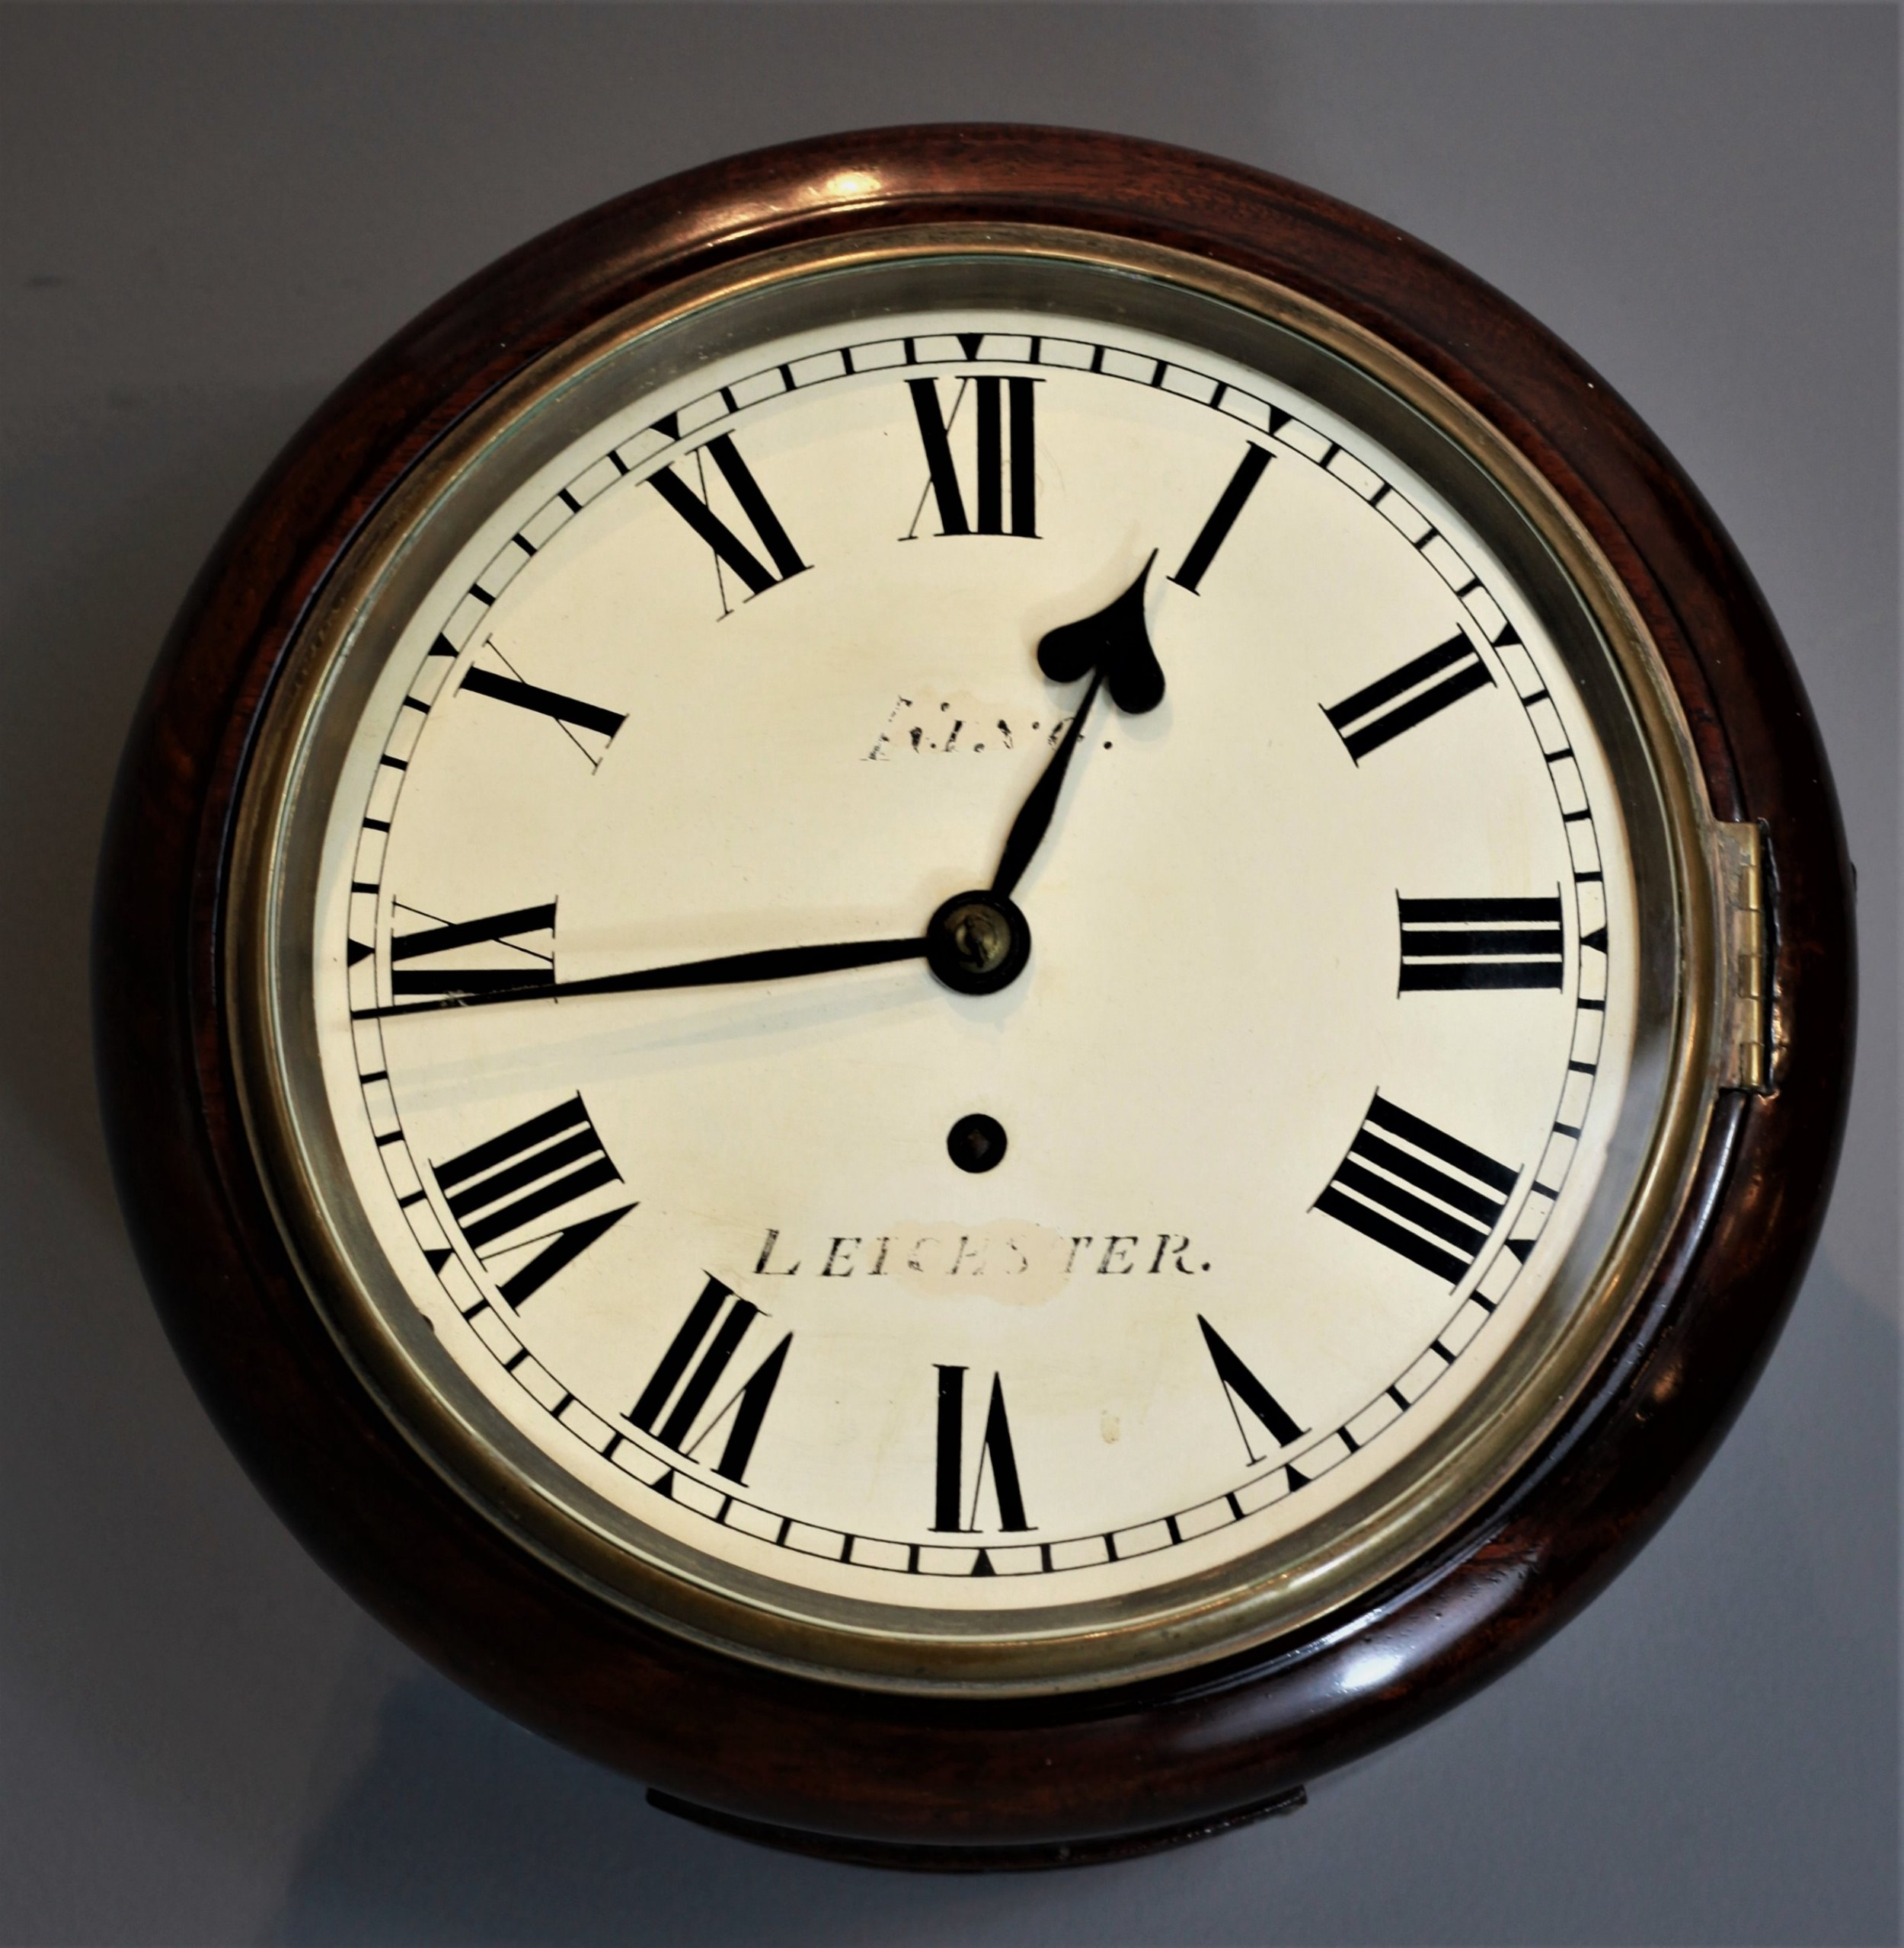 8 inch mahogany dial clock by king of leicester